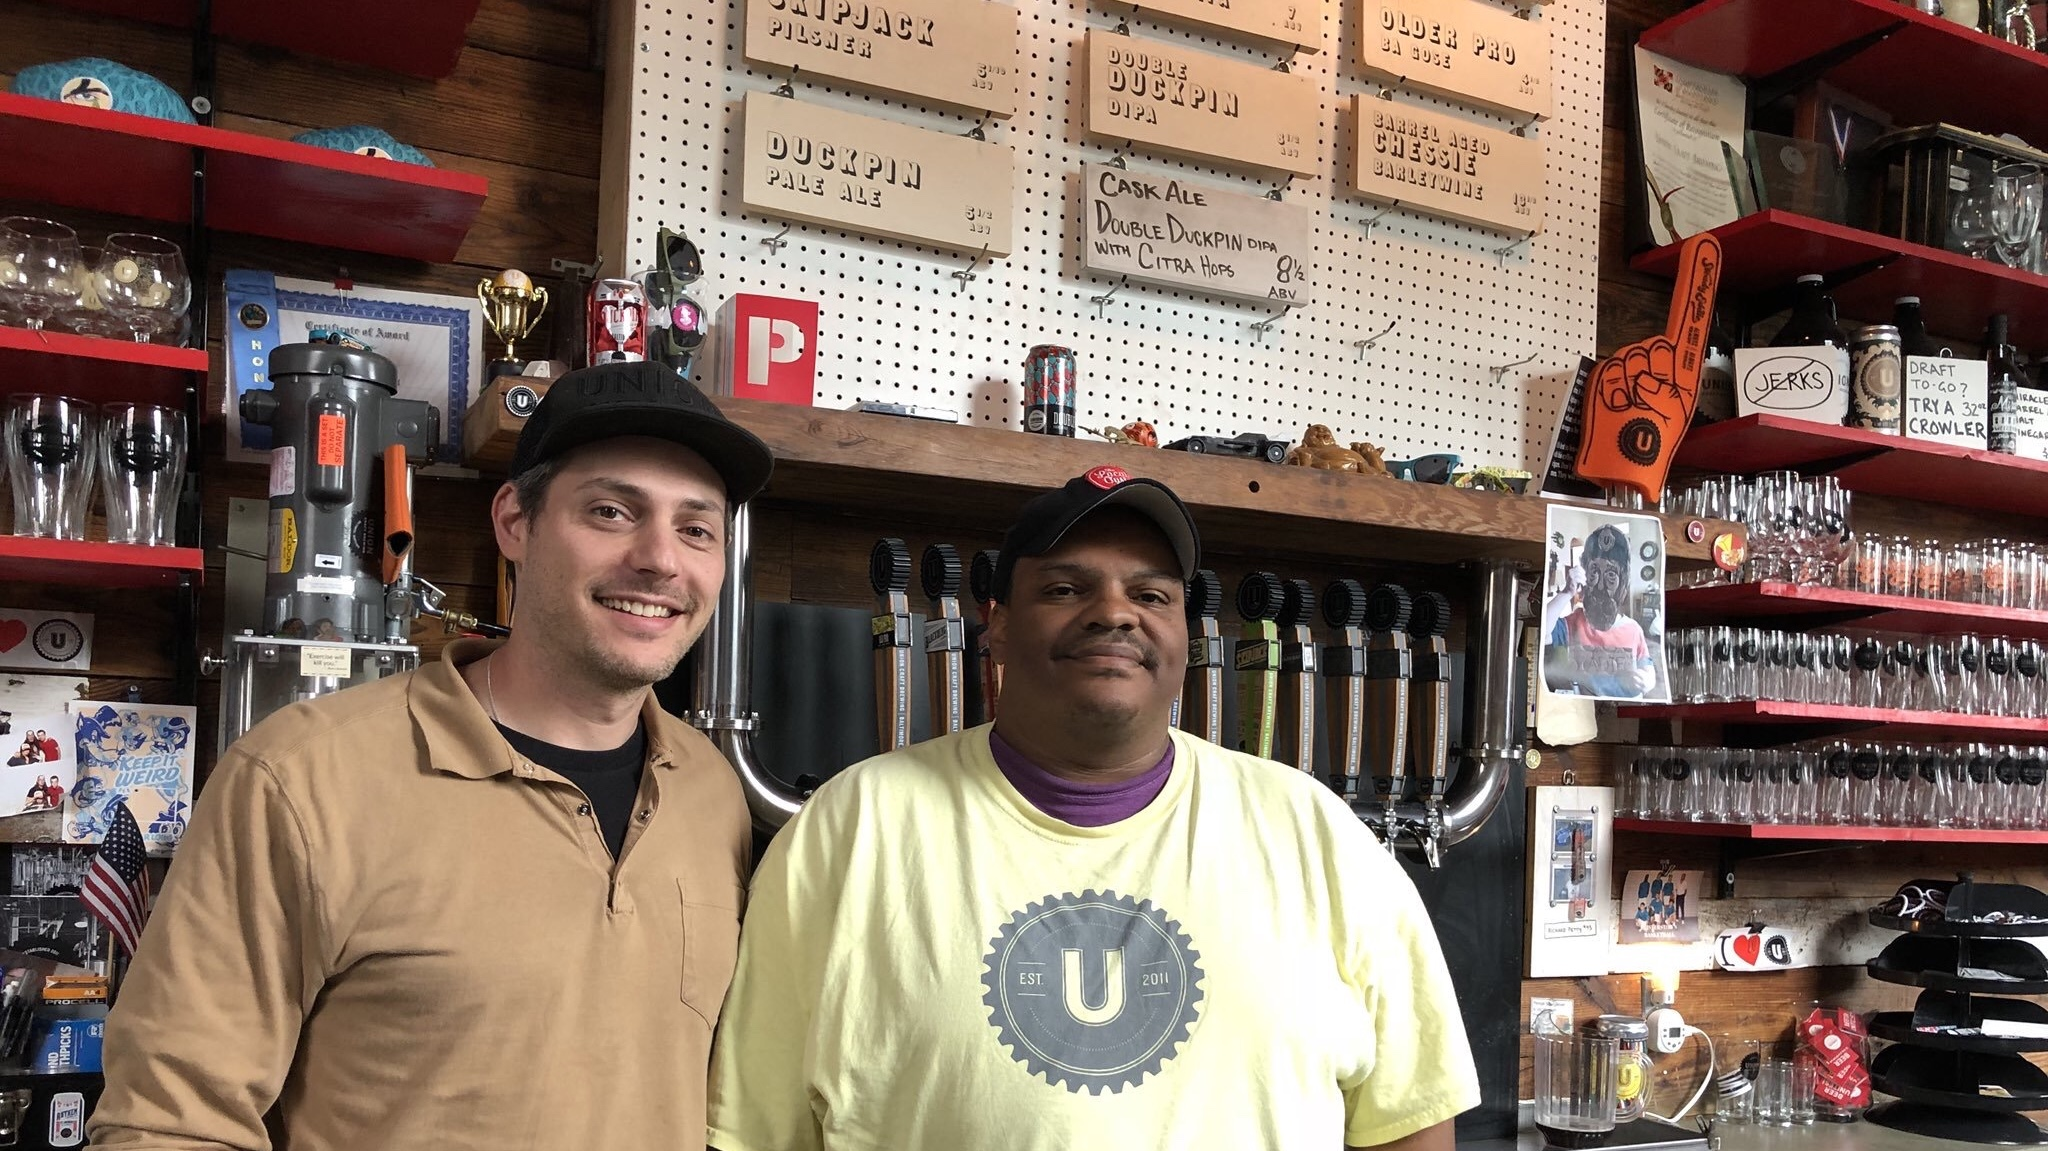 My visit to Baltimore took me to Union Craft Brewery, where I met owner Jon Zerivitz (left) and brewer Kevin Blodger.